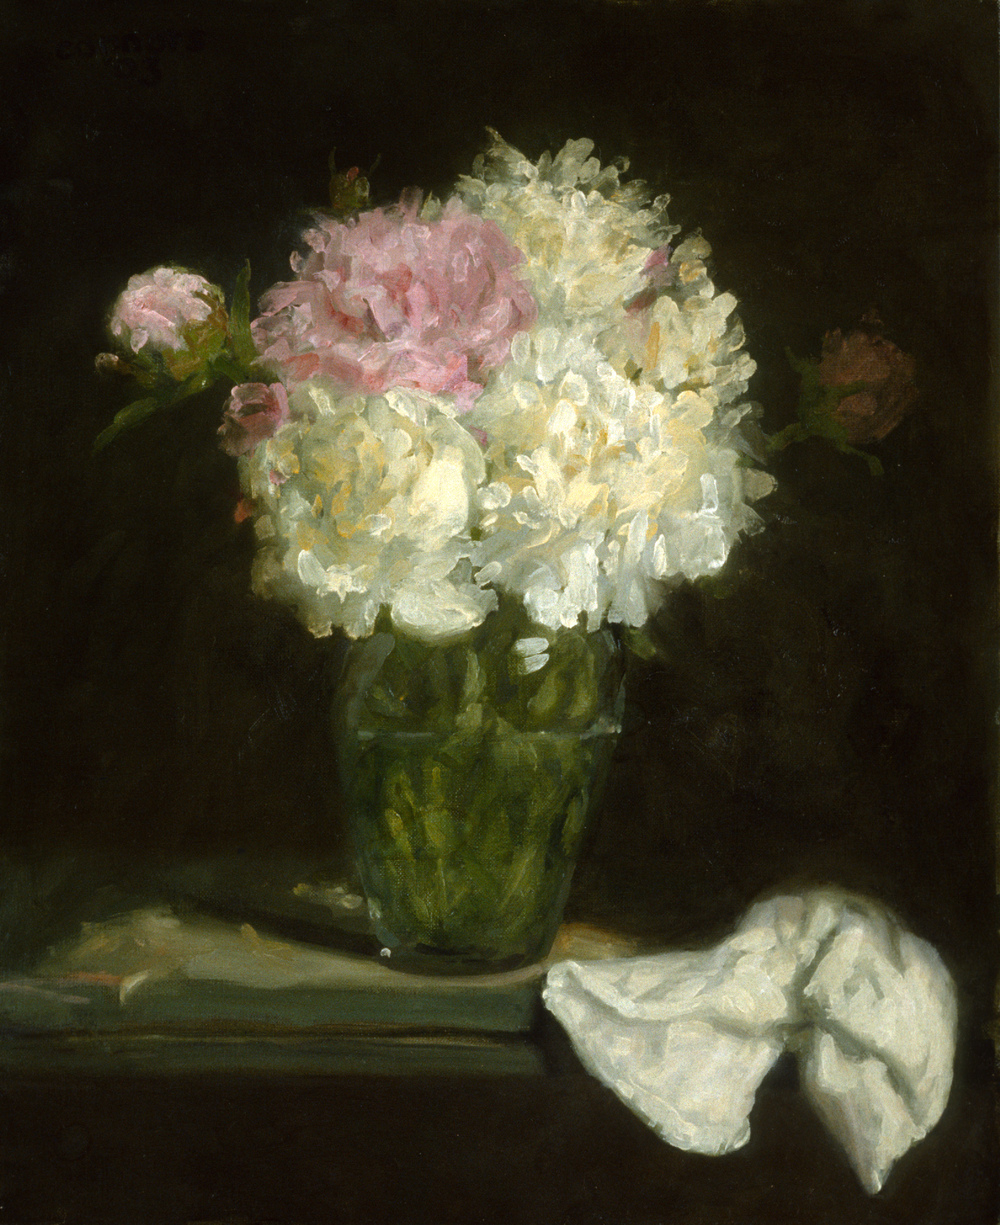 Peonies, 22 x 17 inches, oil on linen